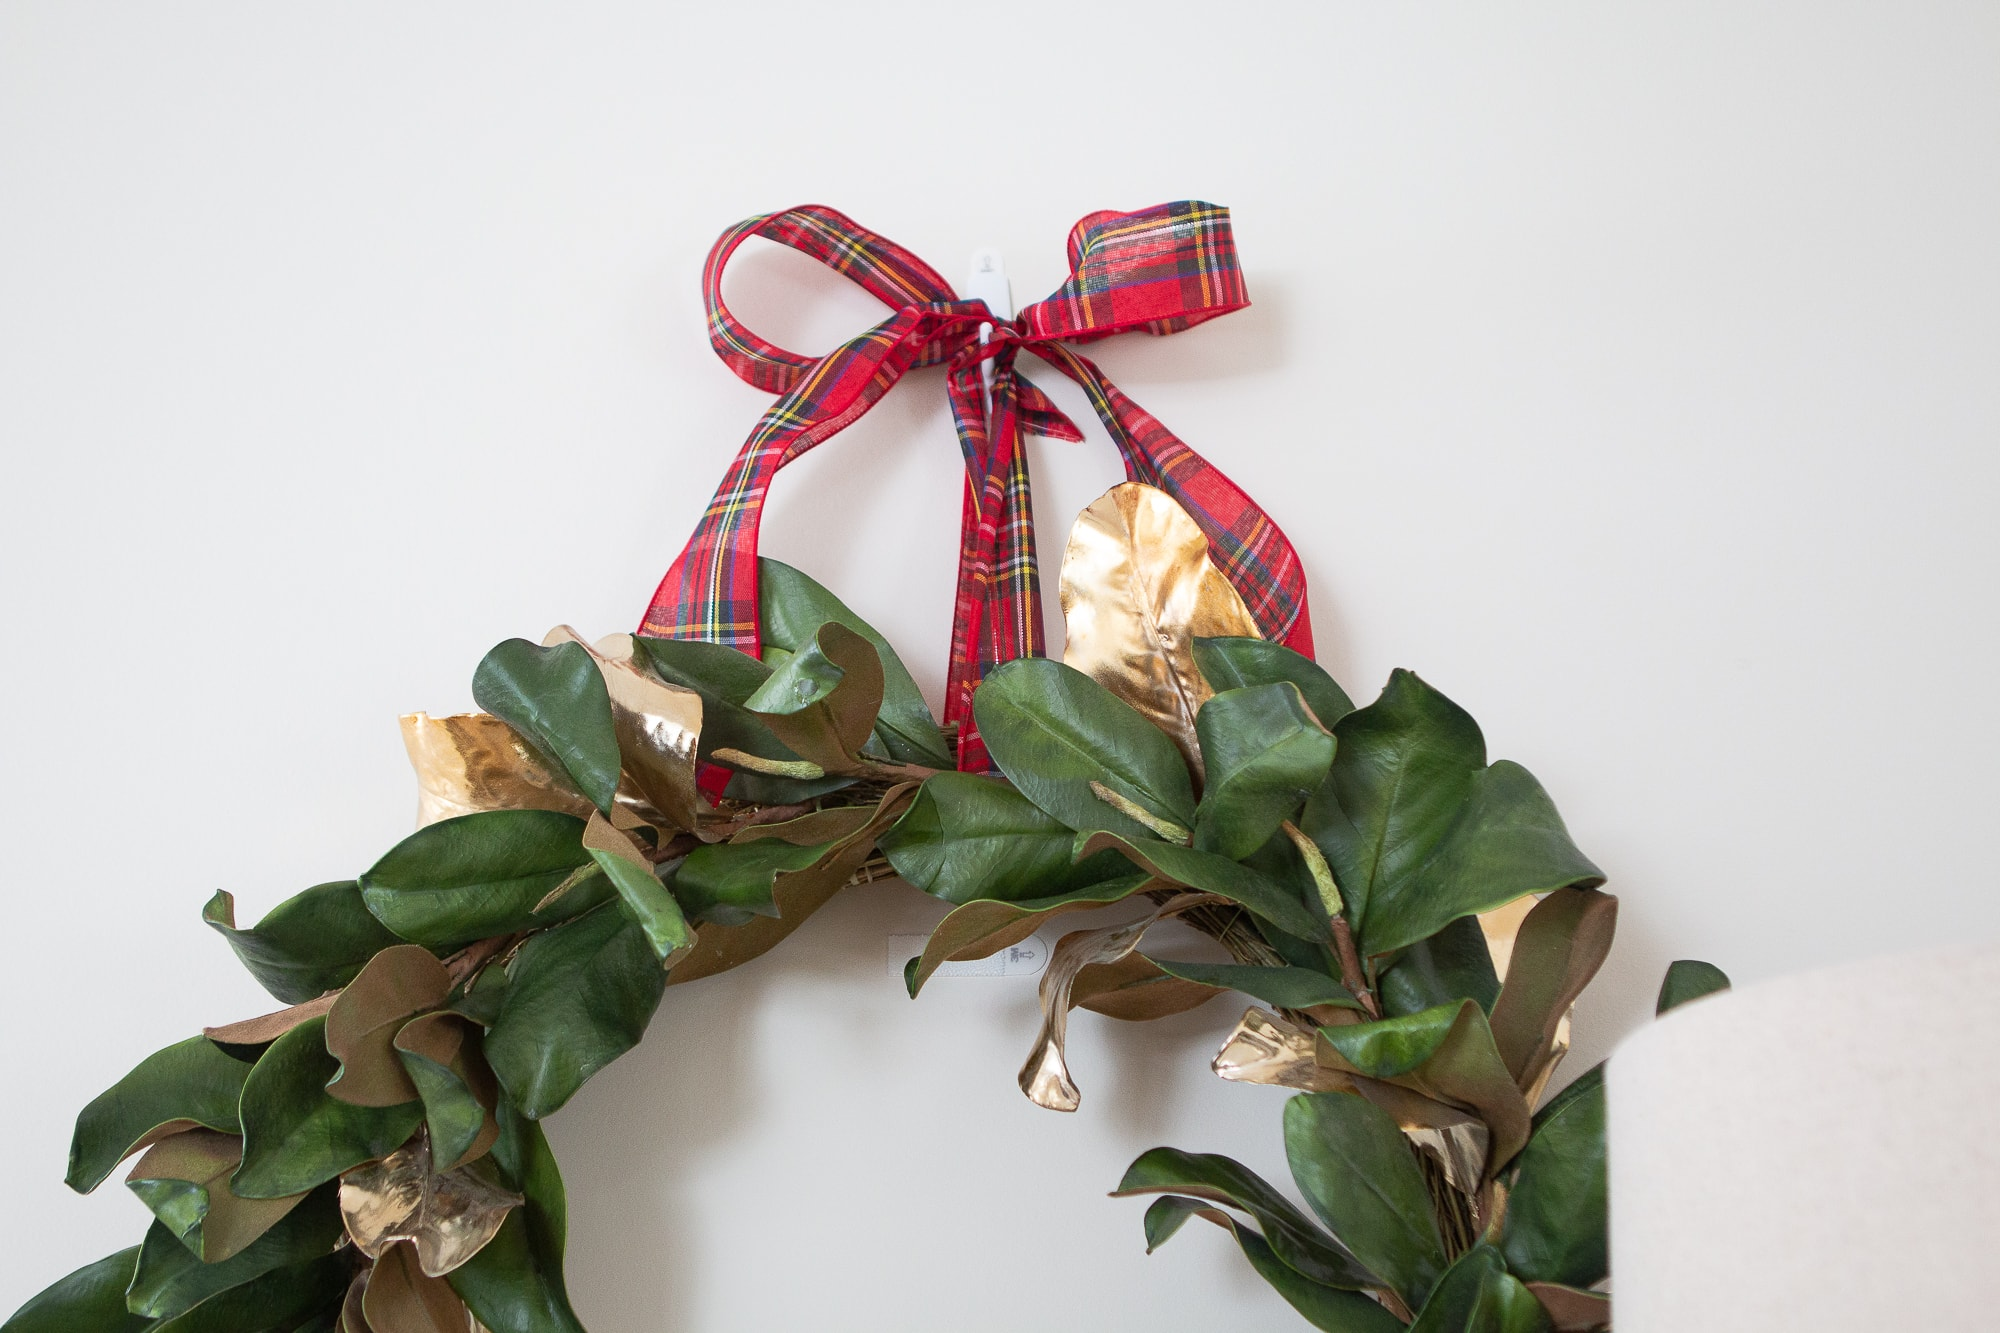 Hang a wreath using a command hook